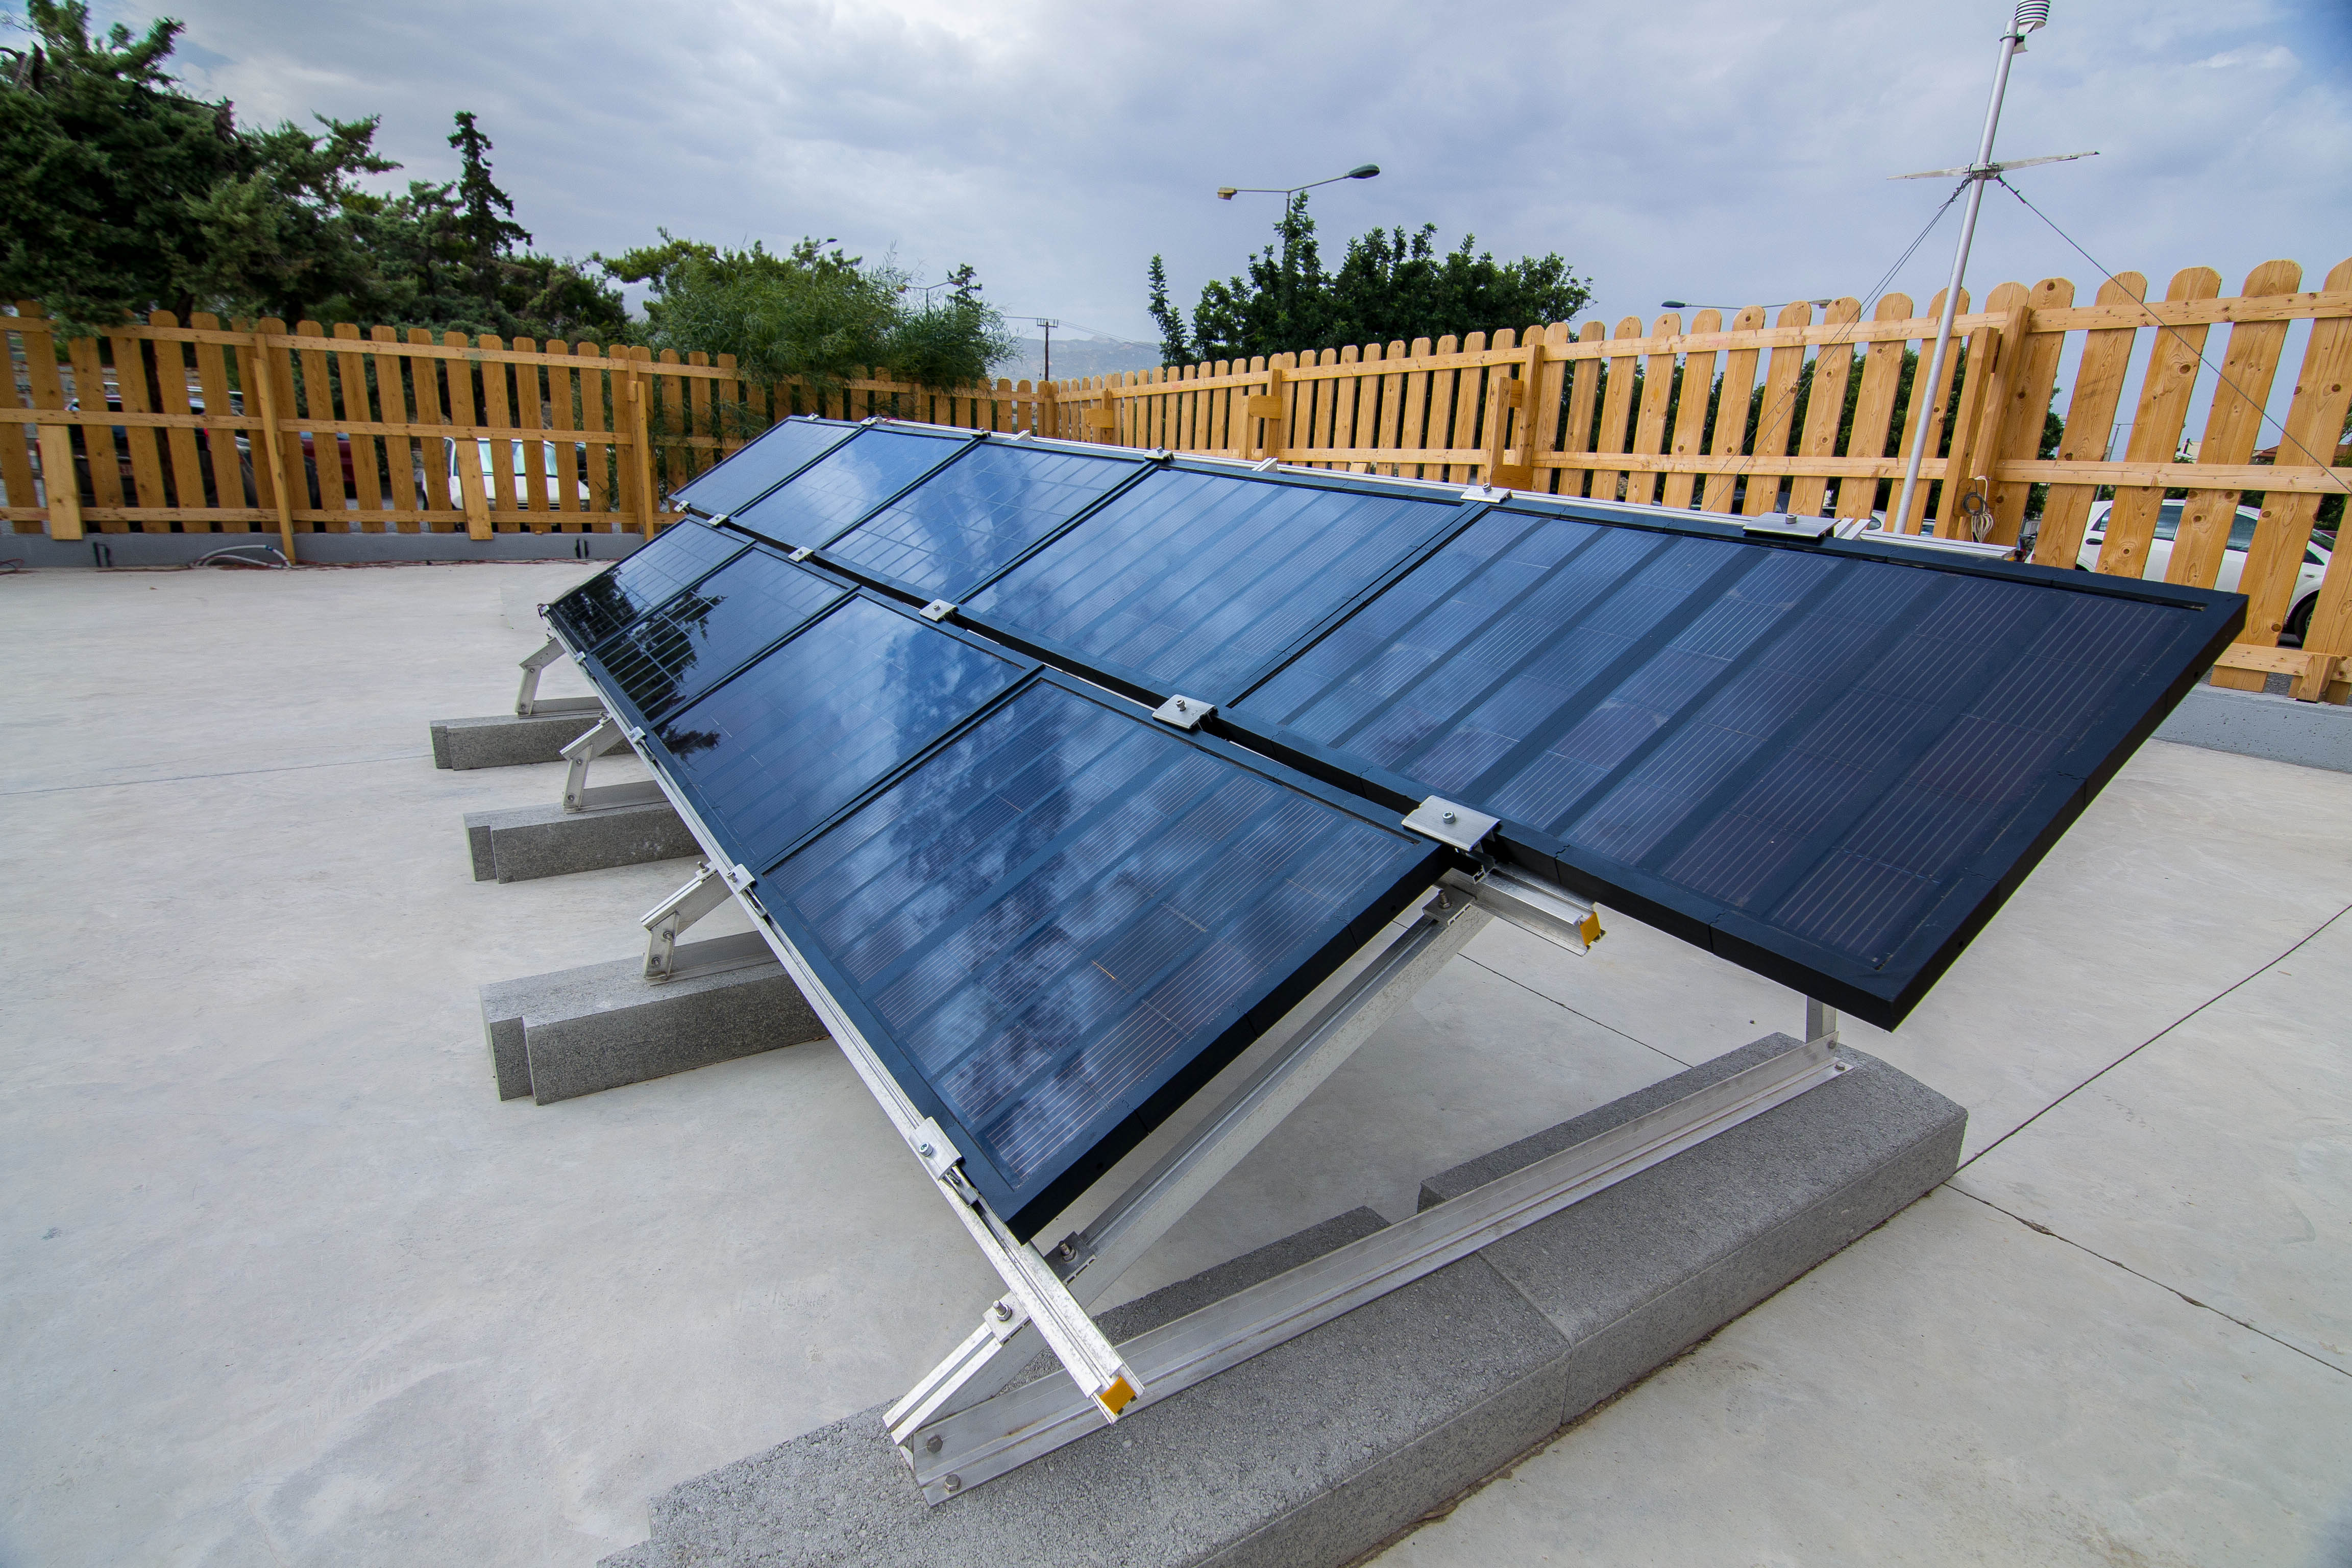 World's first graphene-enabled perovskite solar farm trial up and running